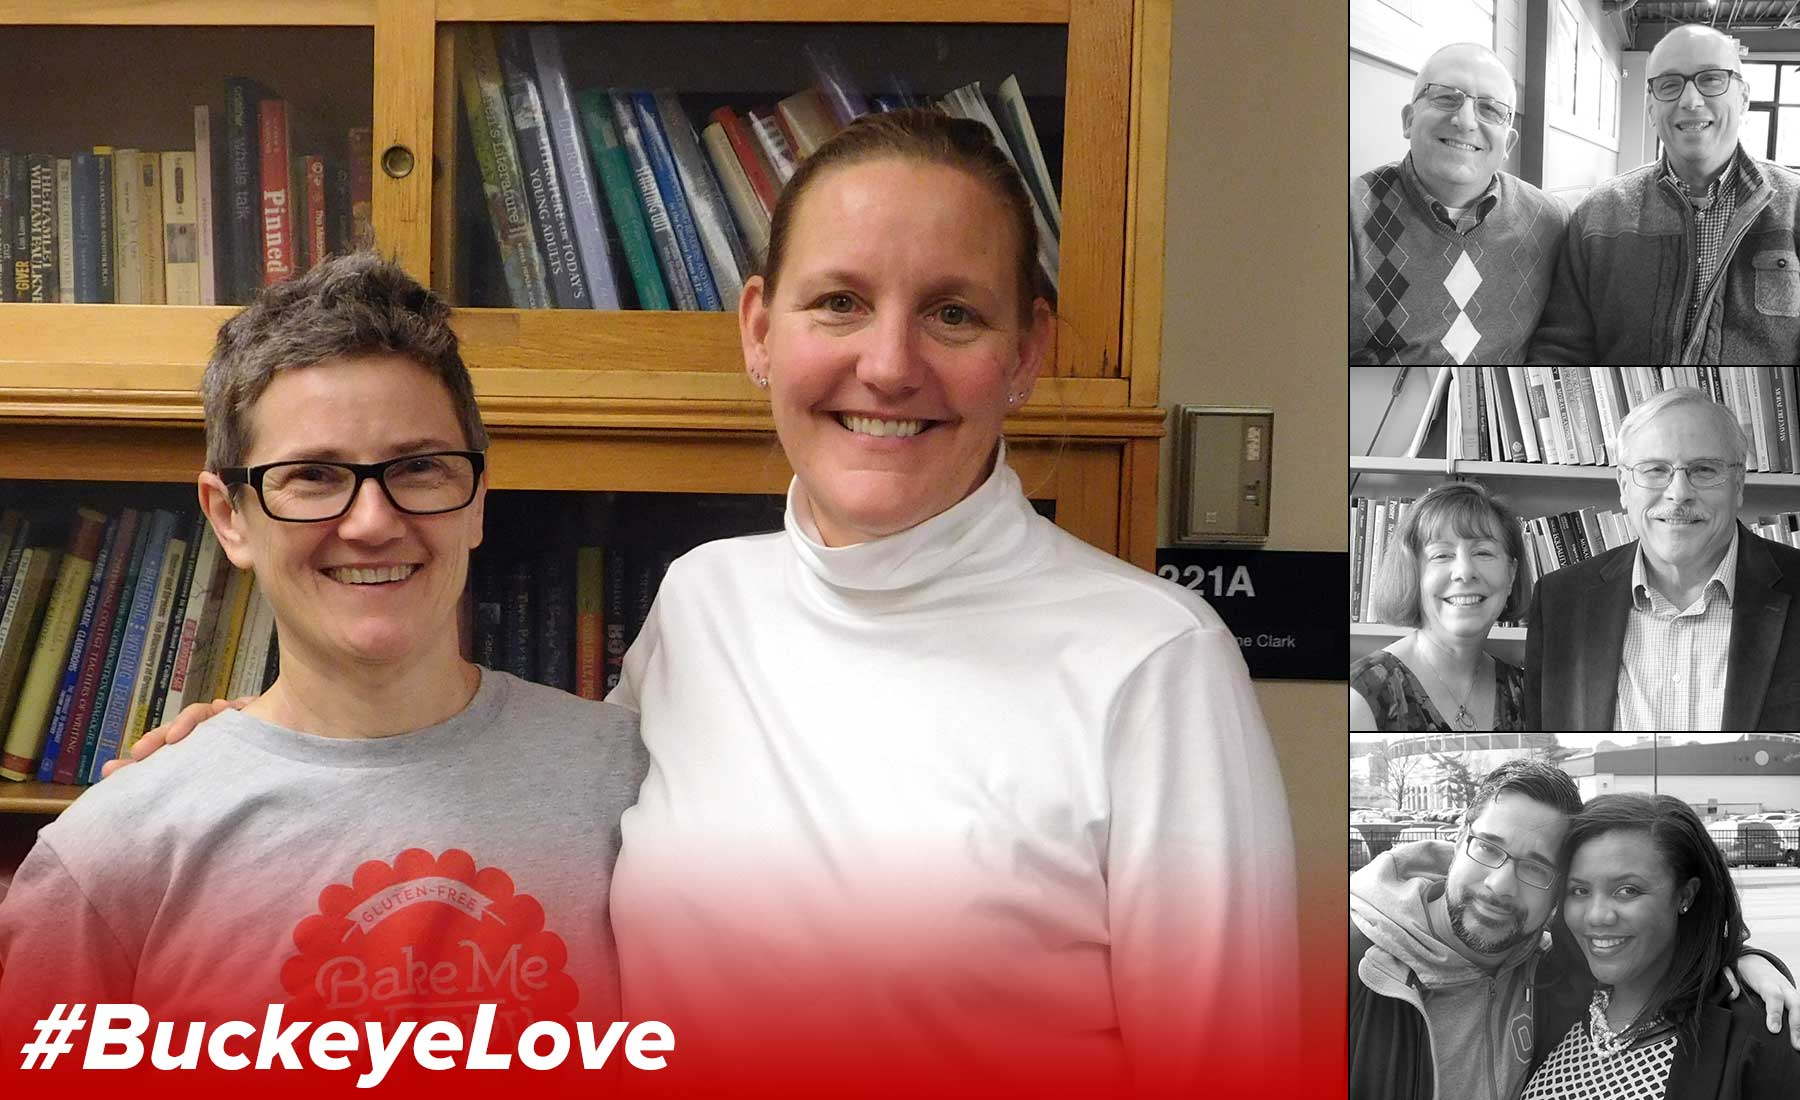 Mollie Blackburn and Mindi Rhoades, the featured couple in this issue of the BuckeyeLove series